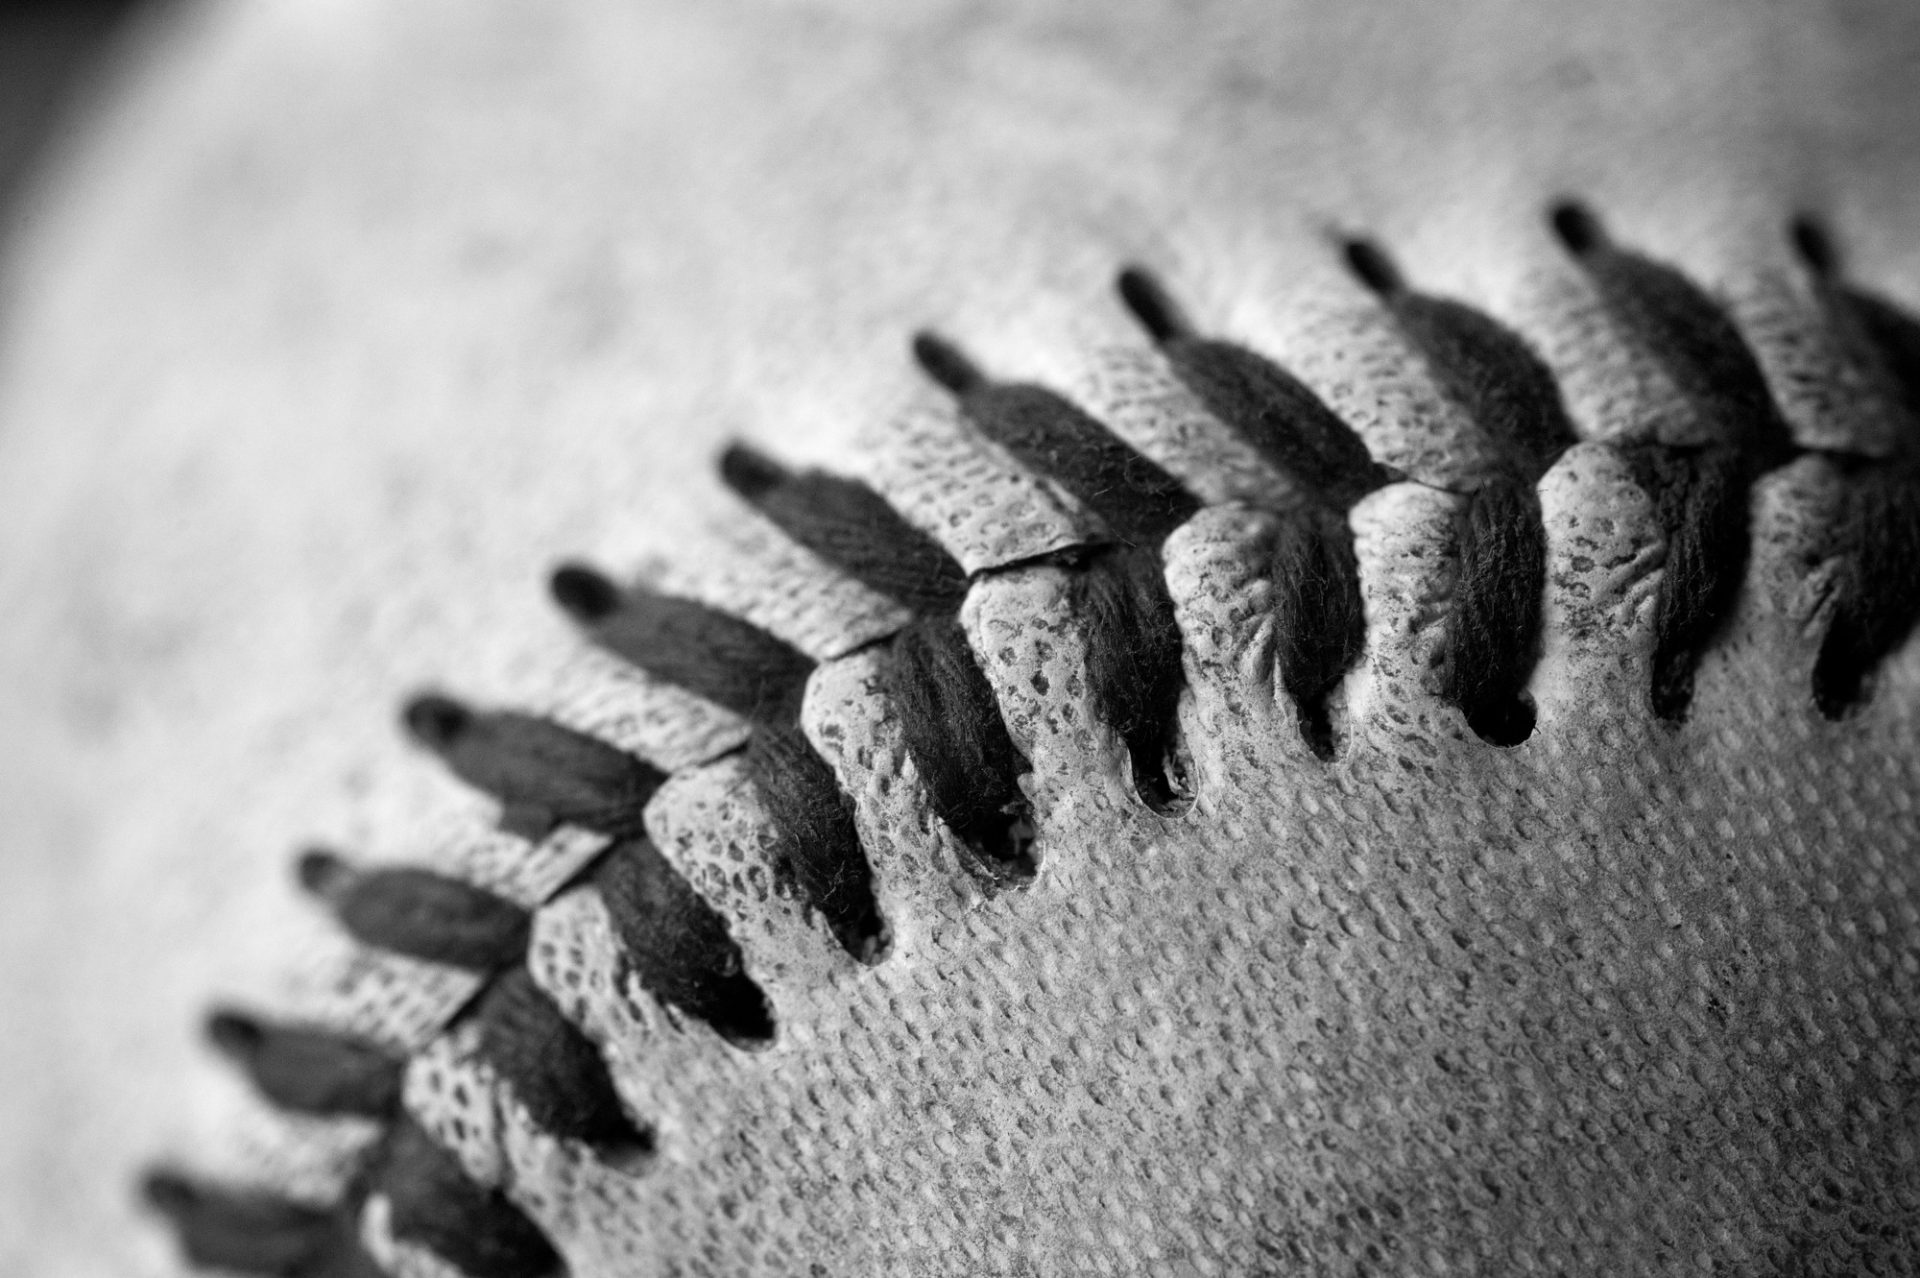 Photo: Detail shot of a baseball.